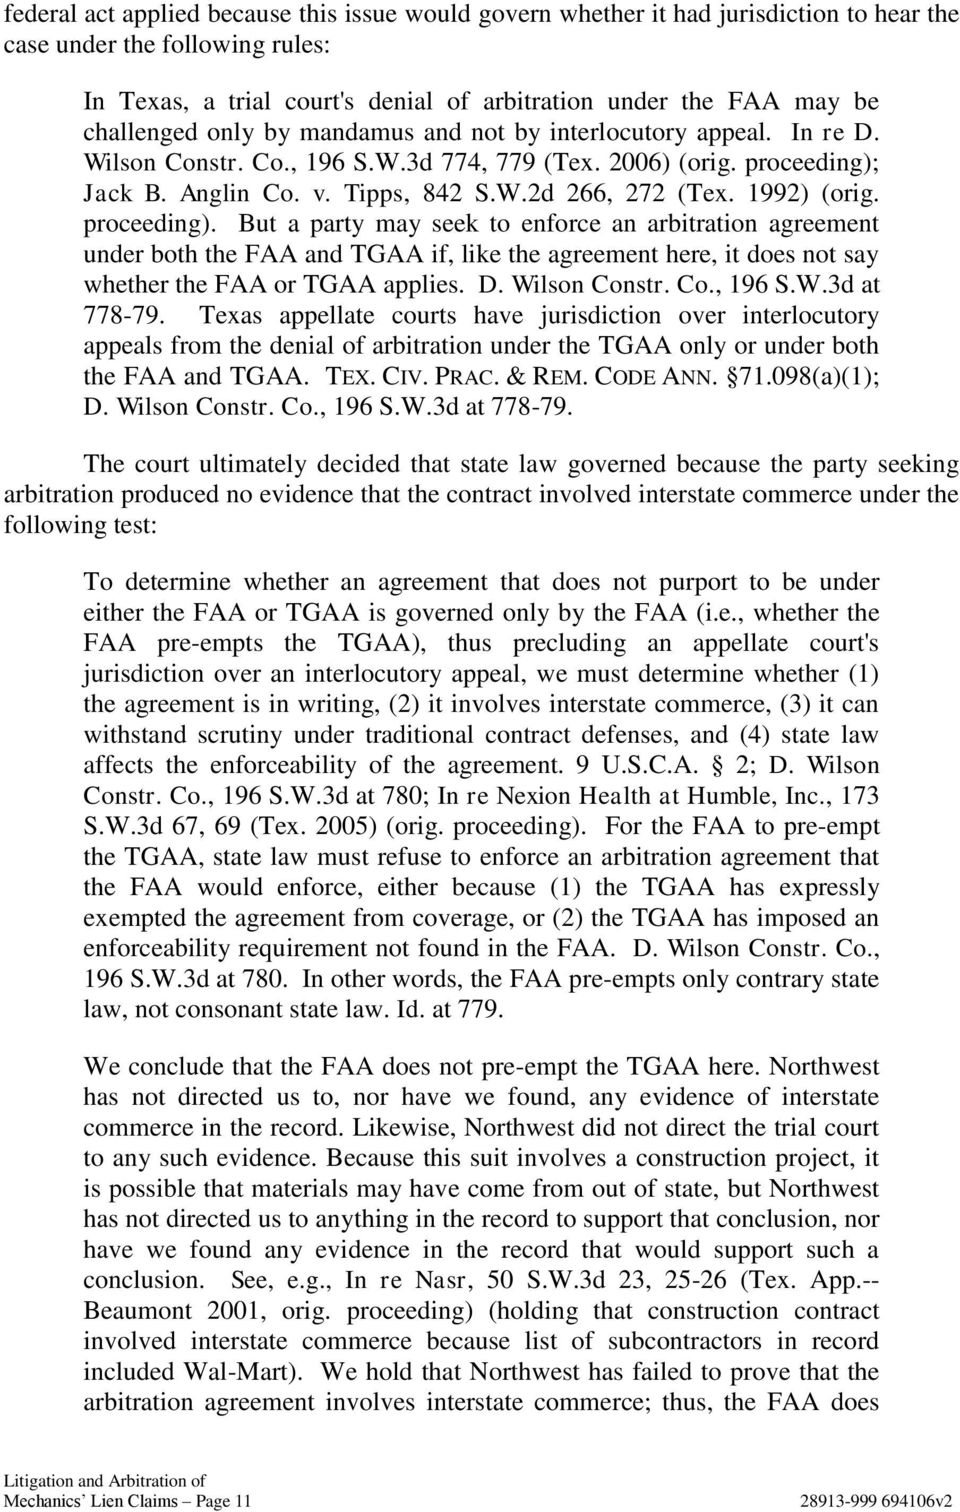 1992) (orig. proceeding). But a party may seek to enforce an arbitration agreement under both the FAA and TGAA if, like the agreement here, it does not say whether the FAA or TGAA applies. D.